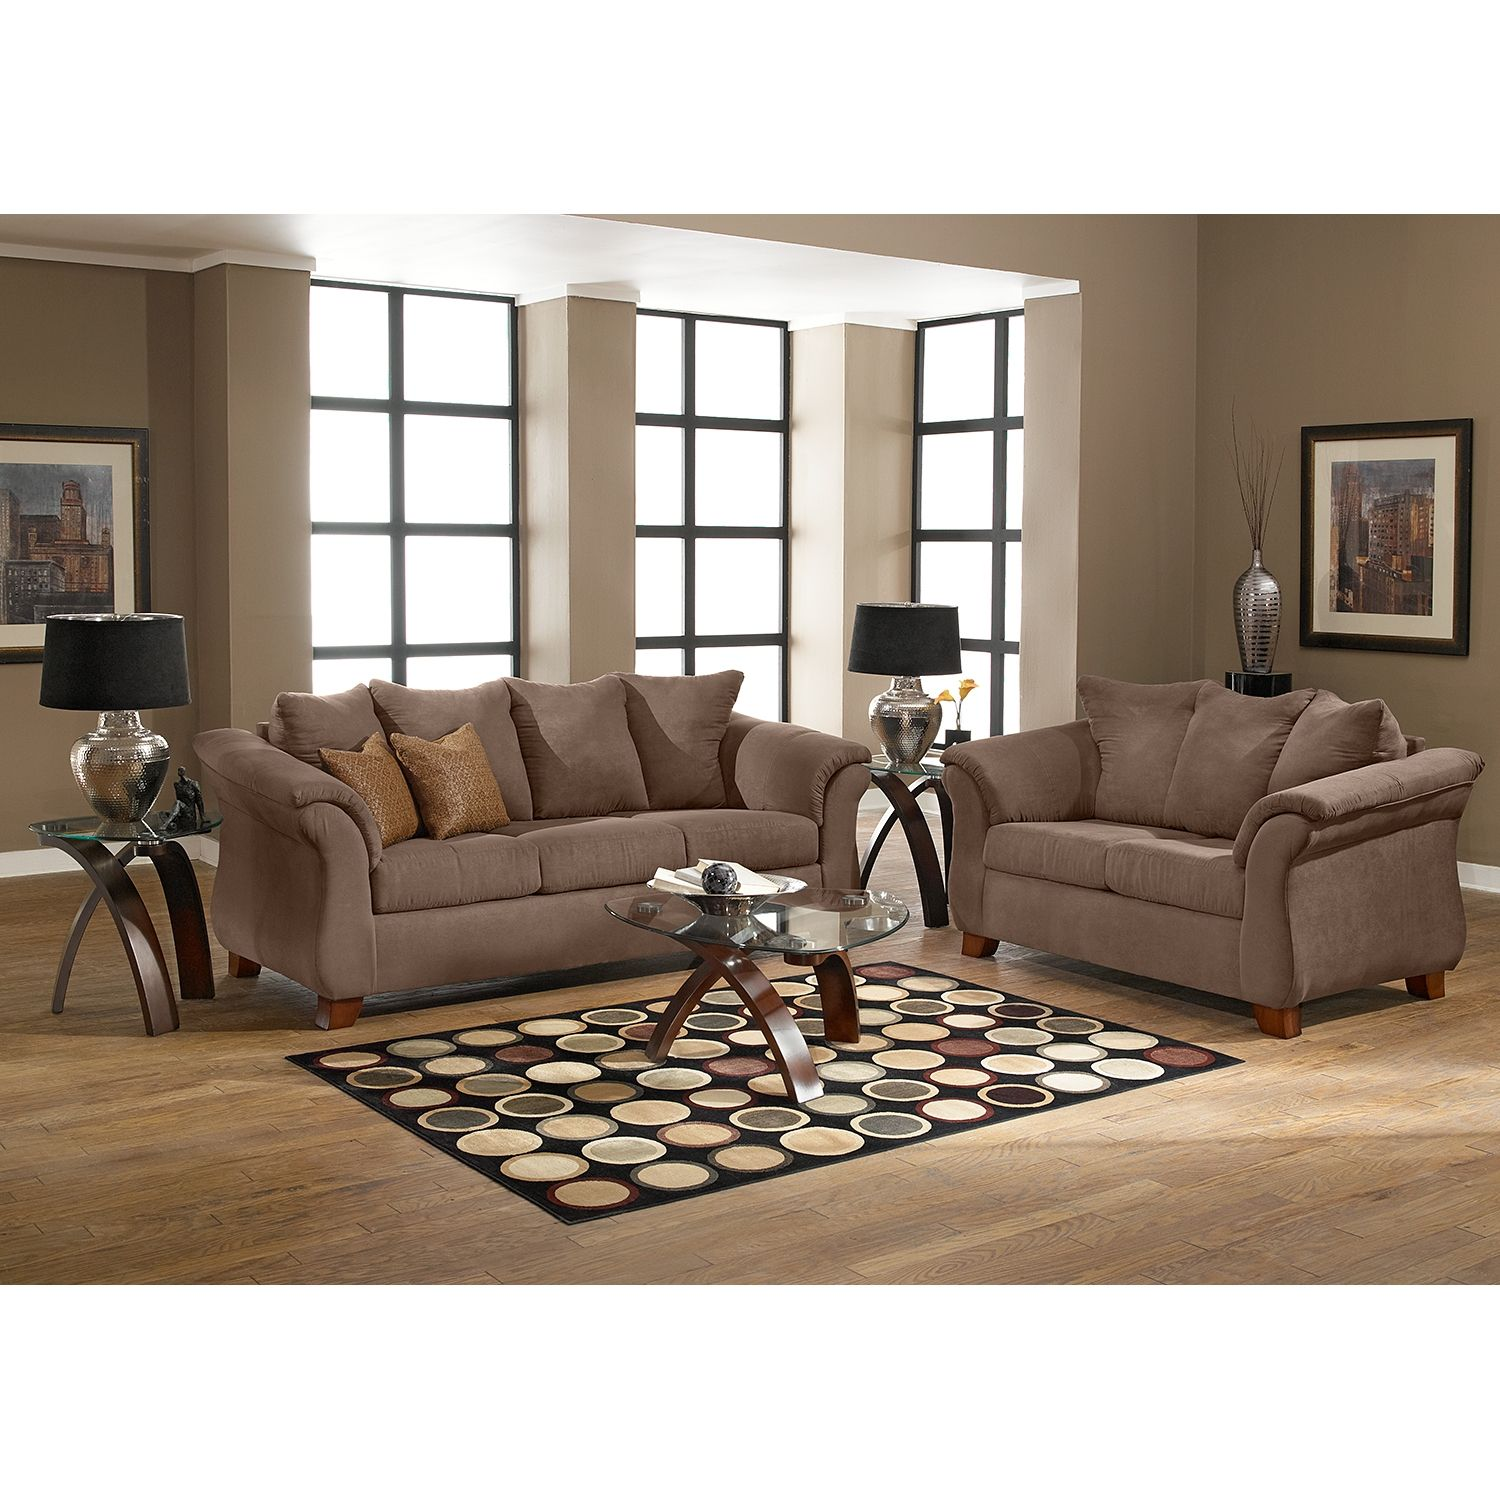 Delightful Adrian Taupe Loveseat | Value City Furniture